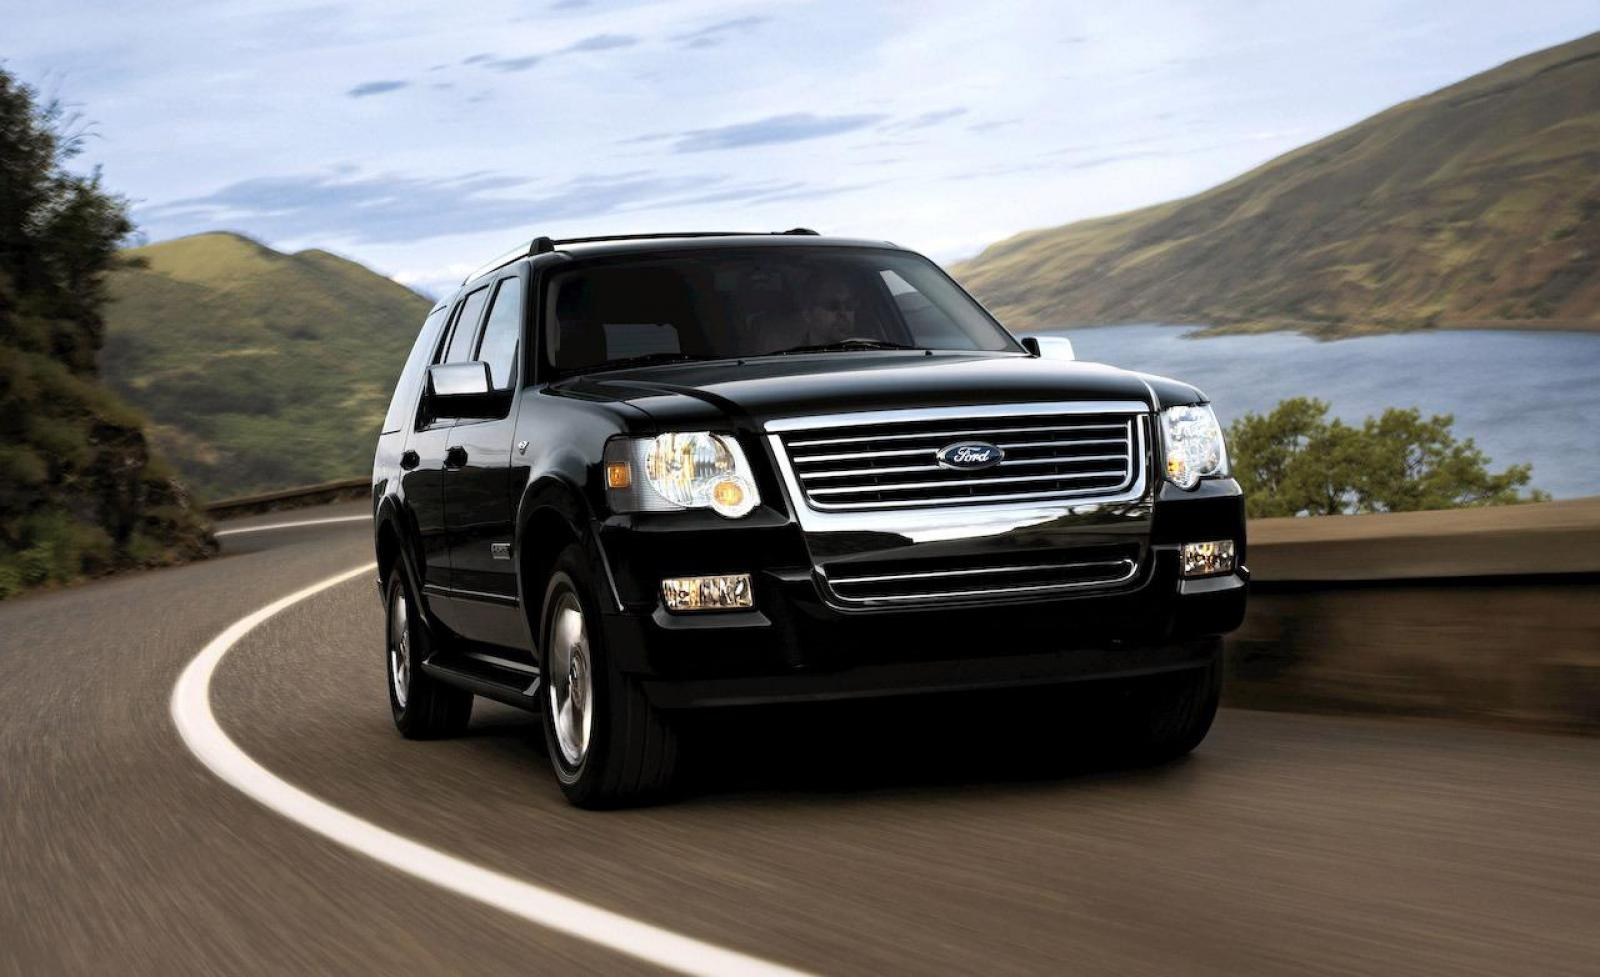 2008 ford explorer information and photos zombiedrive. Black Bedroom Furniture Sets. Home Design Ideas